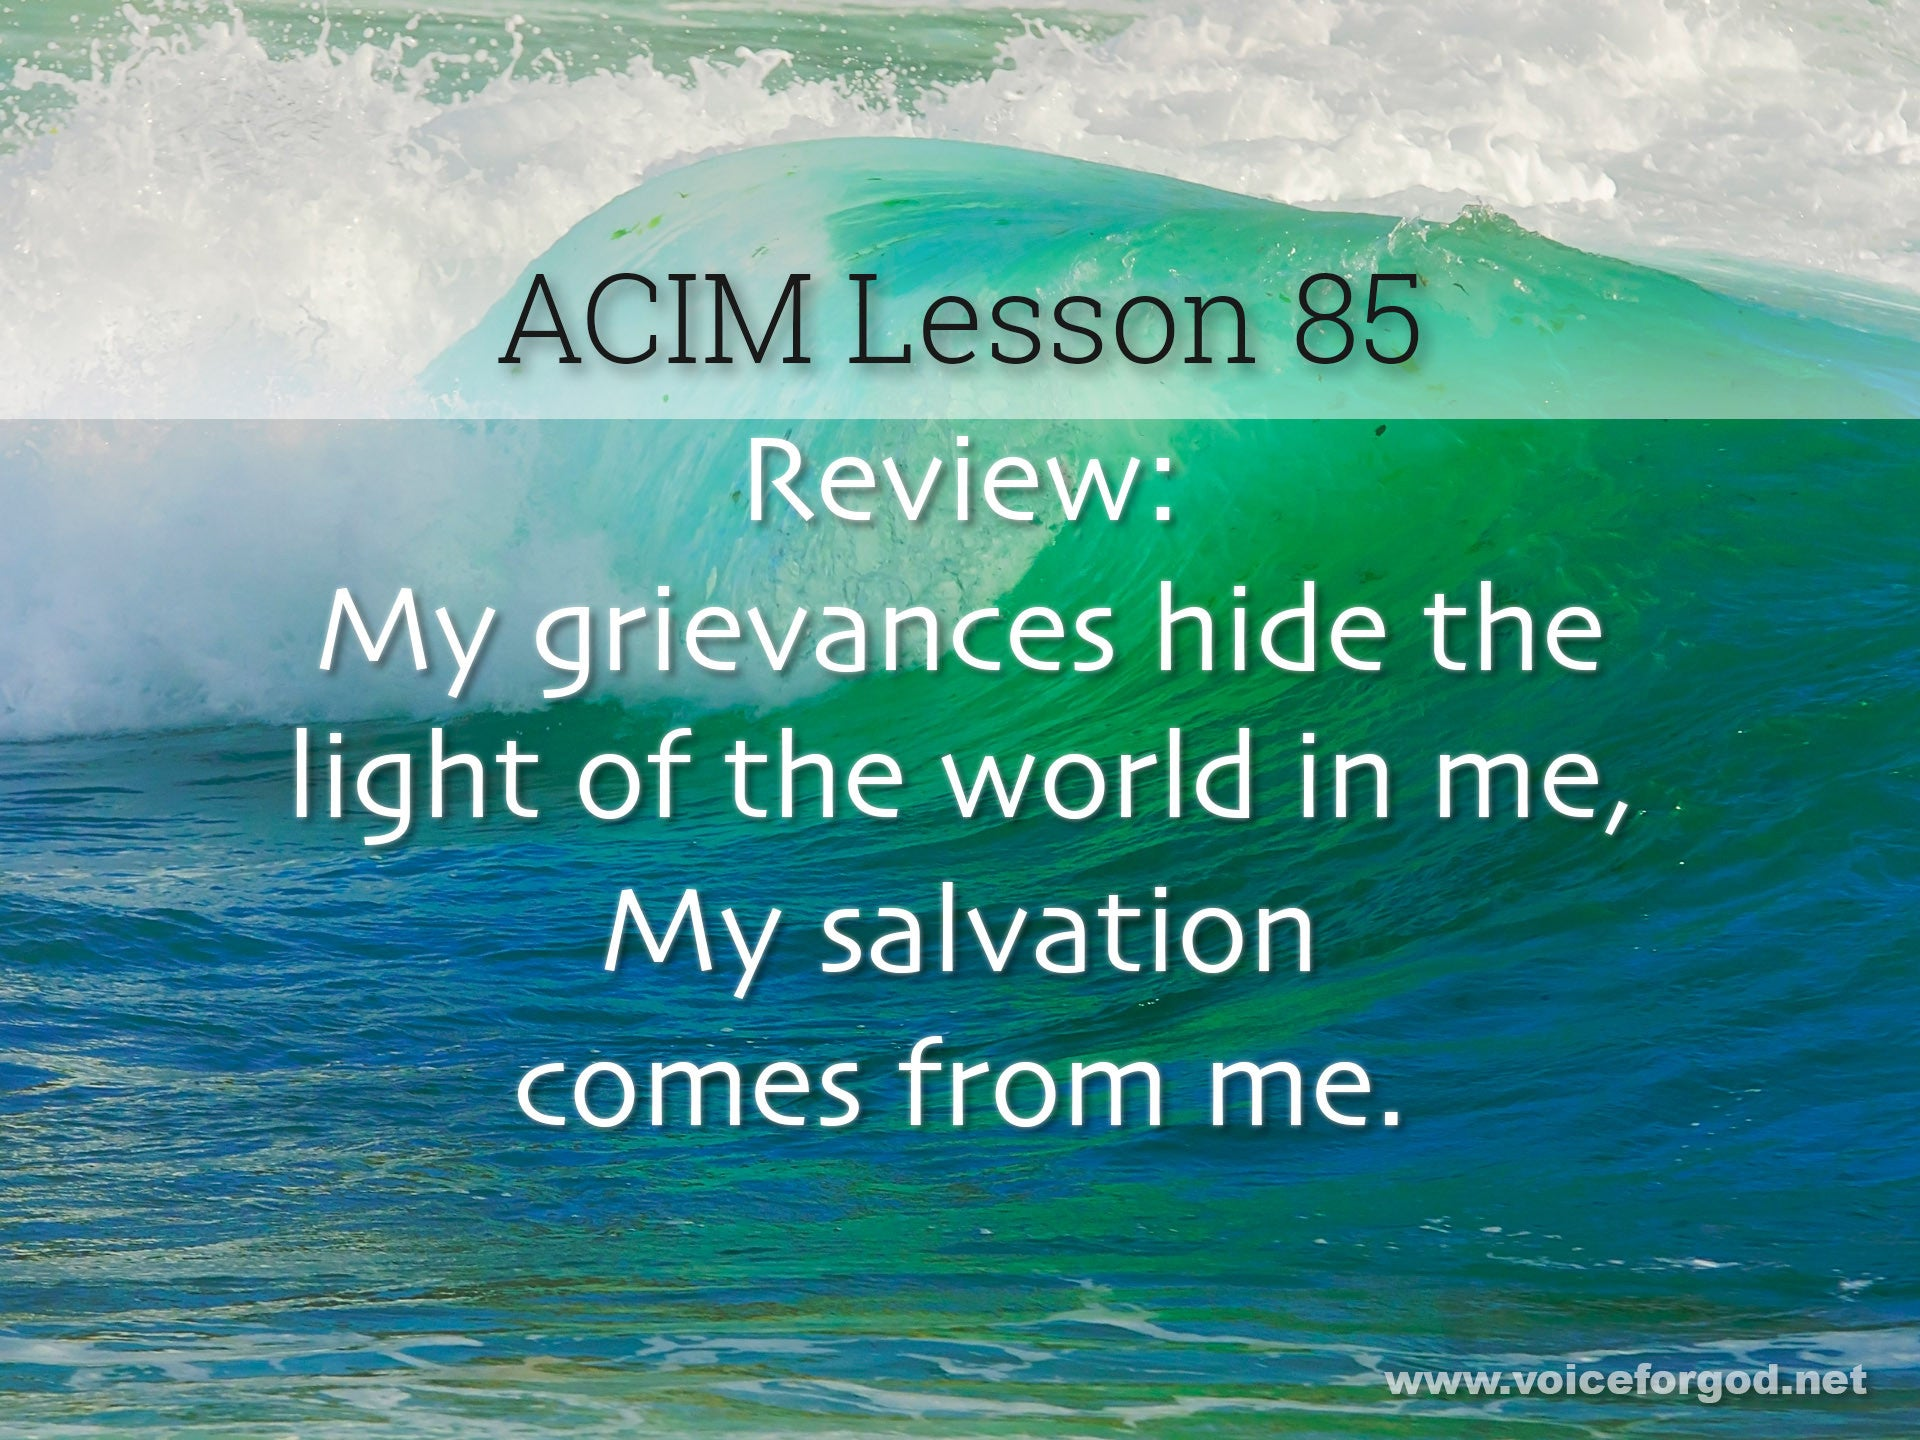 ACIM Lesson 85 - A Course in Miracles Workbook Lesson 85